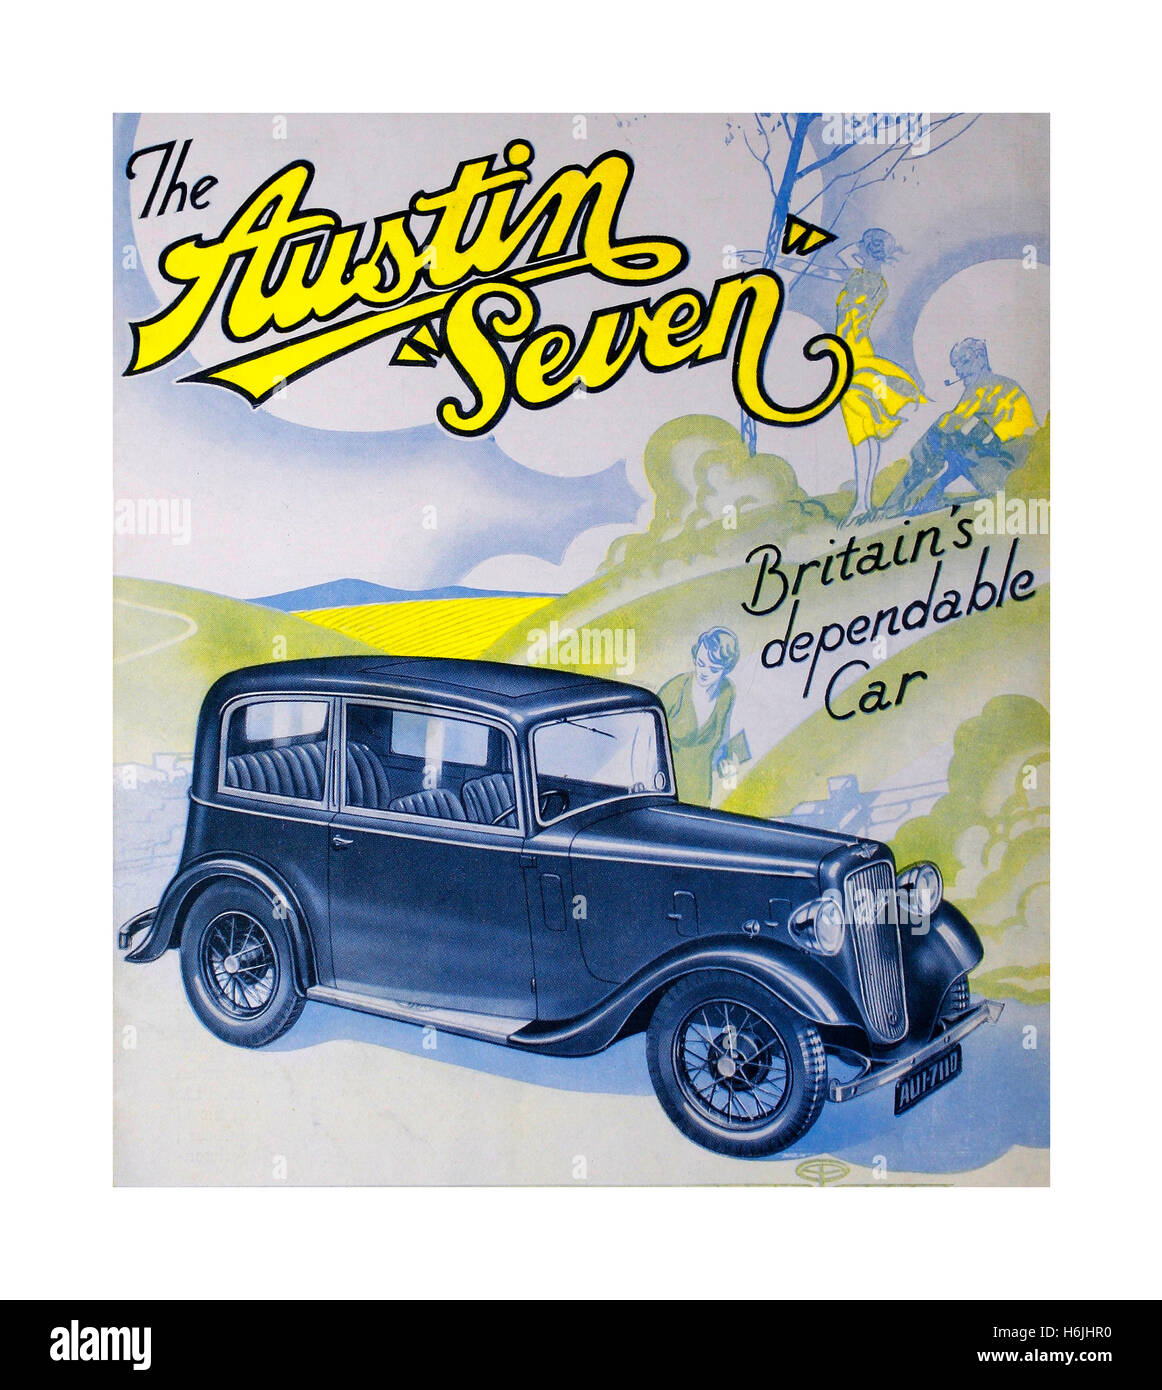 Vintage poster for the Austin 7 an economy saloon car produced from 1922 until 1939 in the United Kingdom by Austin. - Stock Image